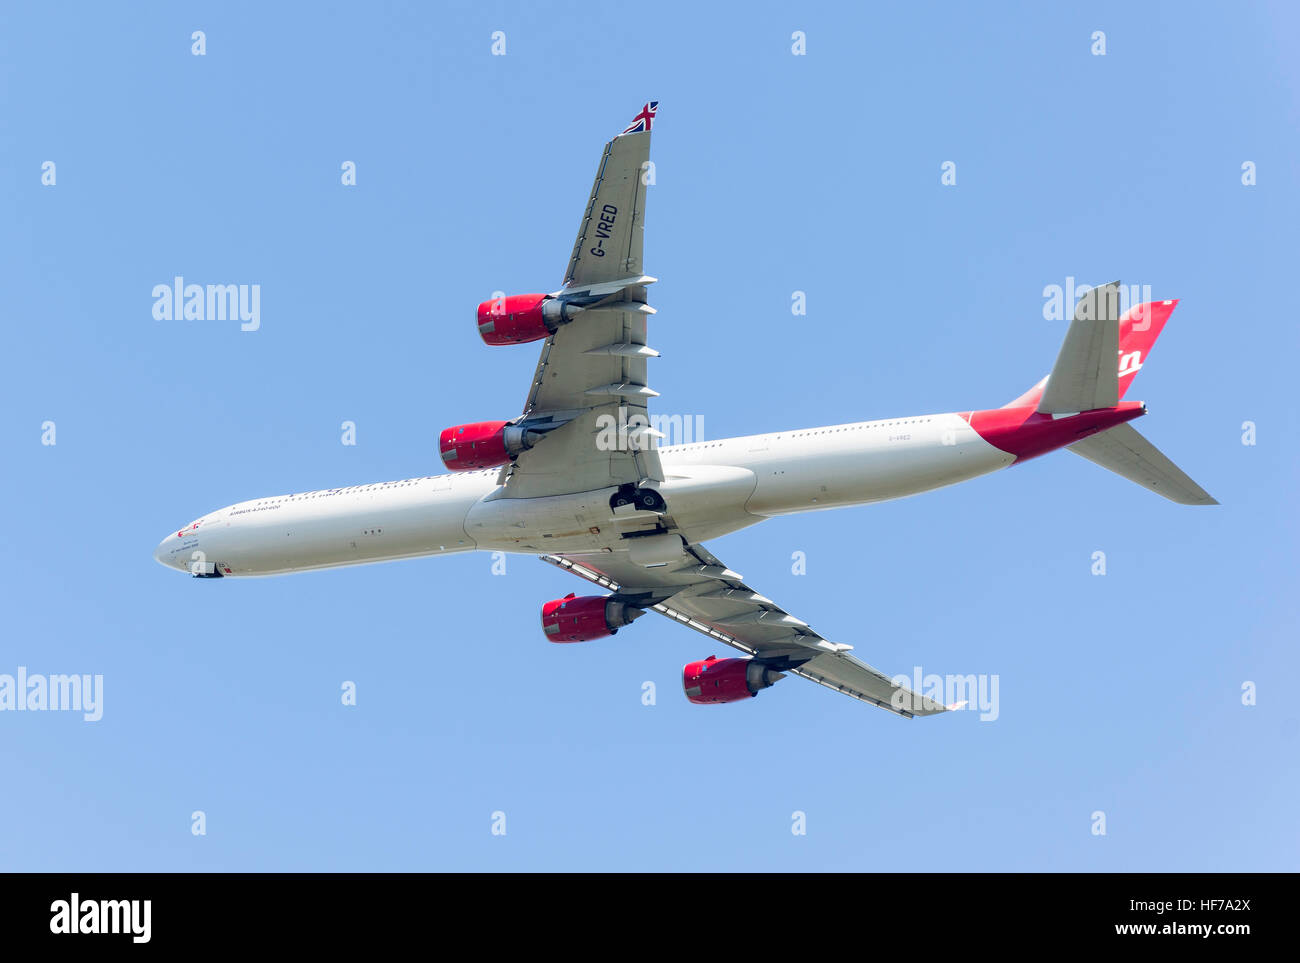 Virgin Atlantic Airbus A340-642 taking off from Heathrow Airport, Greater London, England, United Kingdom - Stock Image